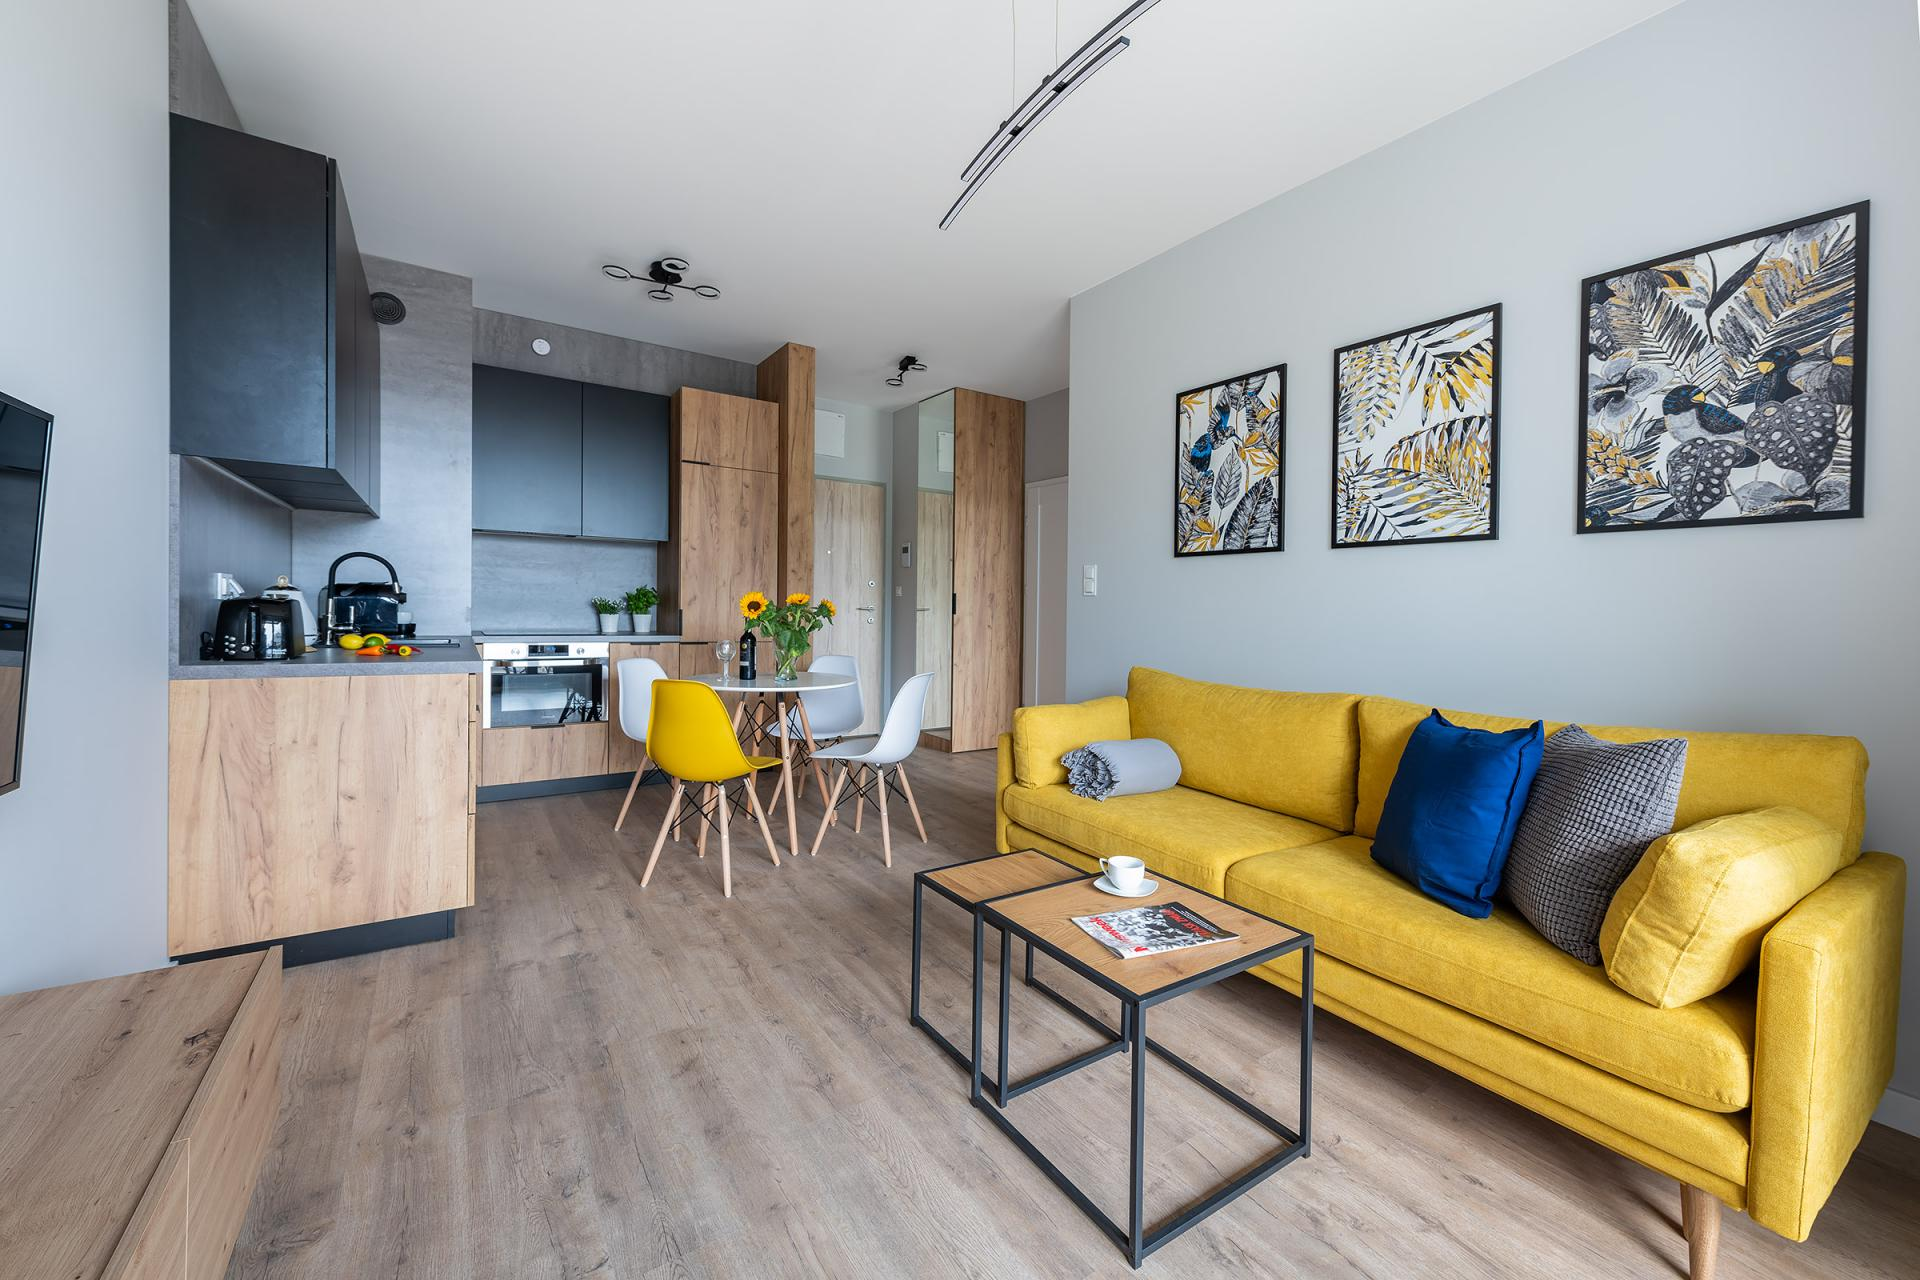 Open plan living at Cybernetyki 4 Apartment, Sluzewiec, Warsaw - Citybase Apartments